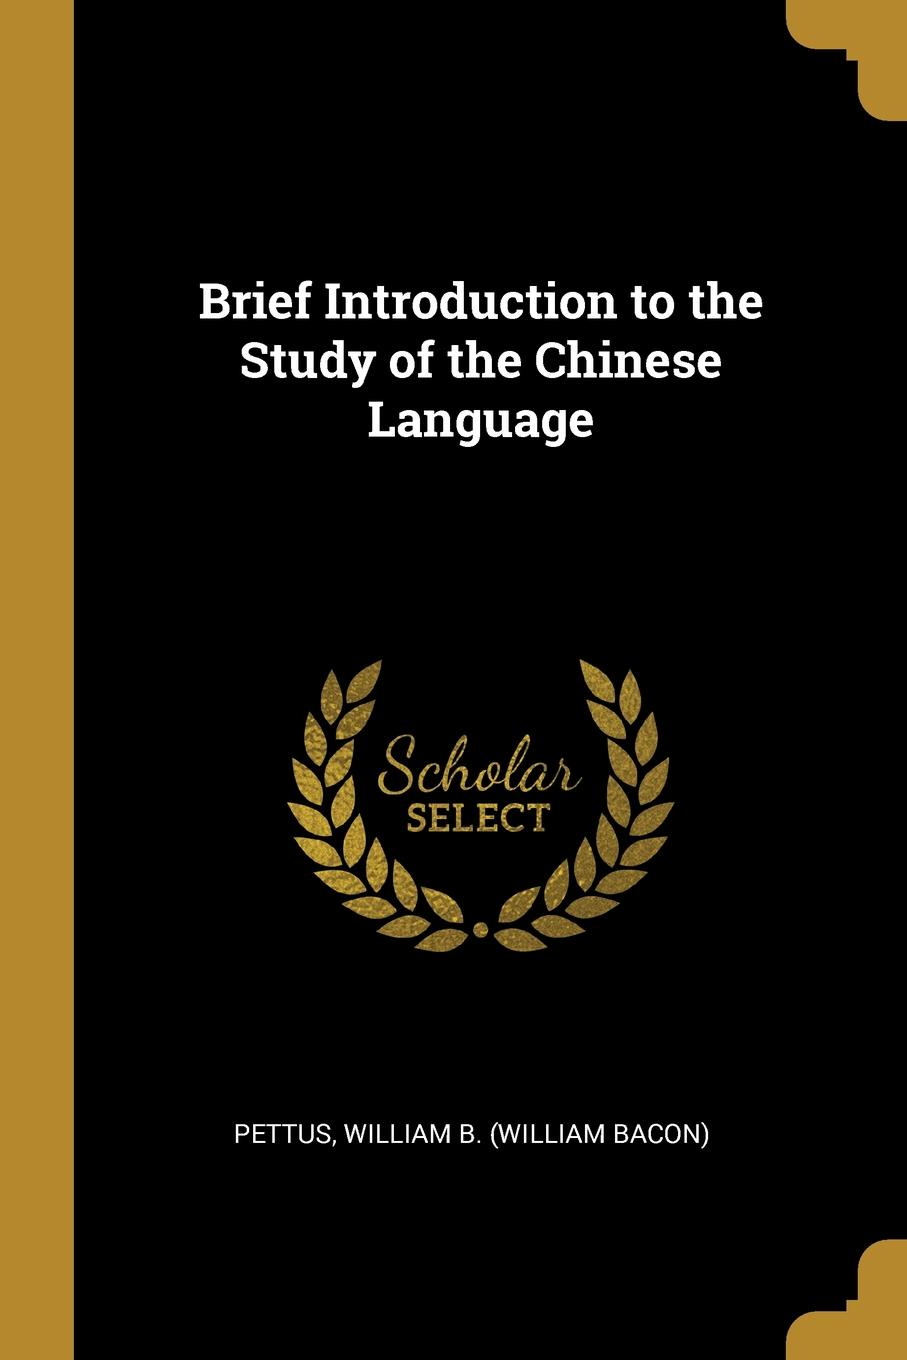 Pettus William B. (William Bacon). Brief Introduction to the Study of the Chinese Language